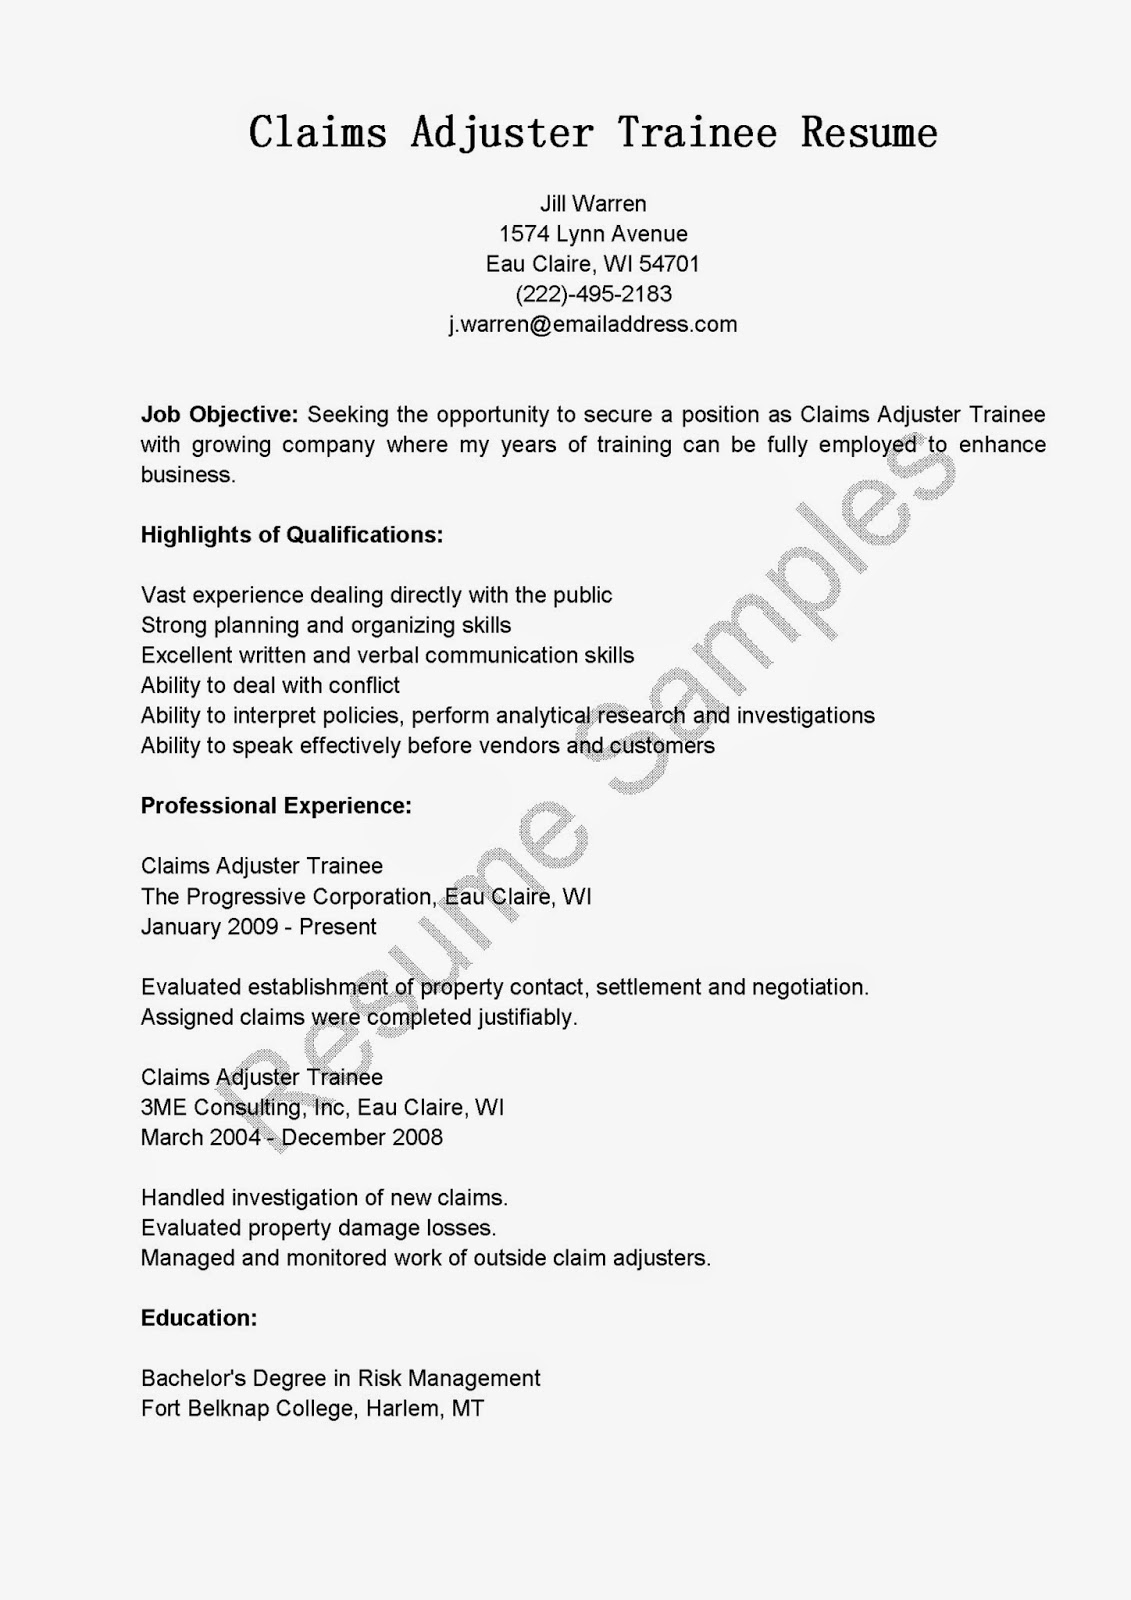 Resume samples claims adjuster trainee resume sample for Cover letter for claims adjuster position